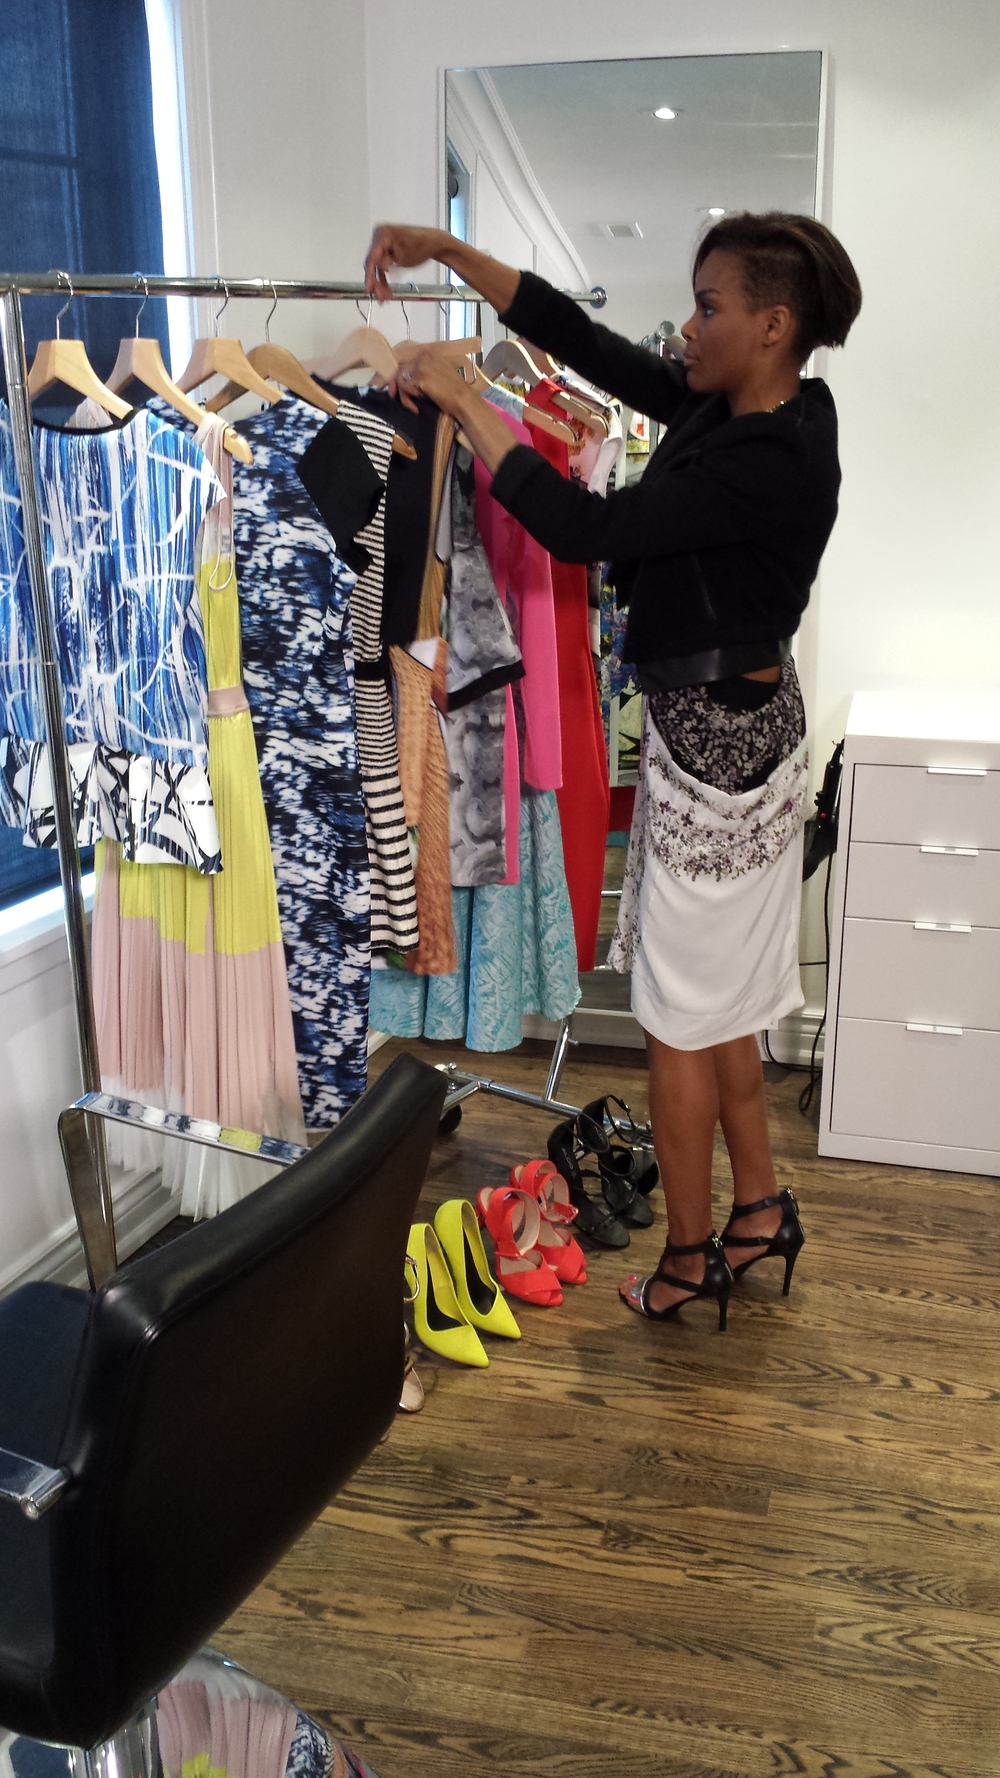 Sorting through the selects for our final looks. Wearing BCBG Max Azria